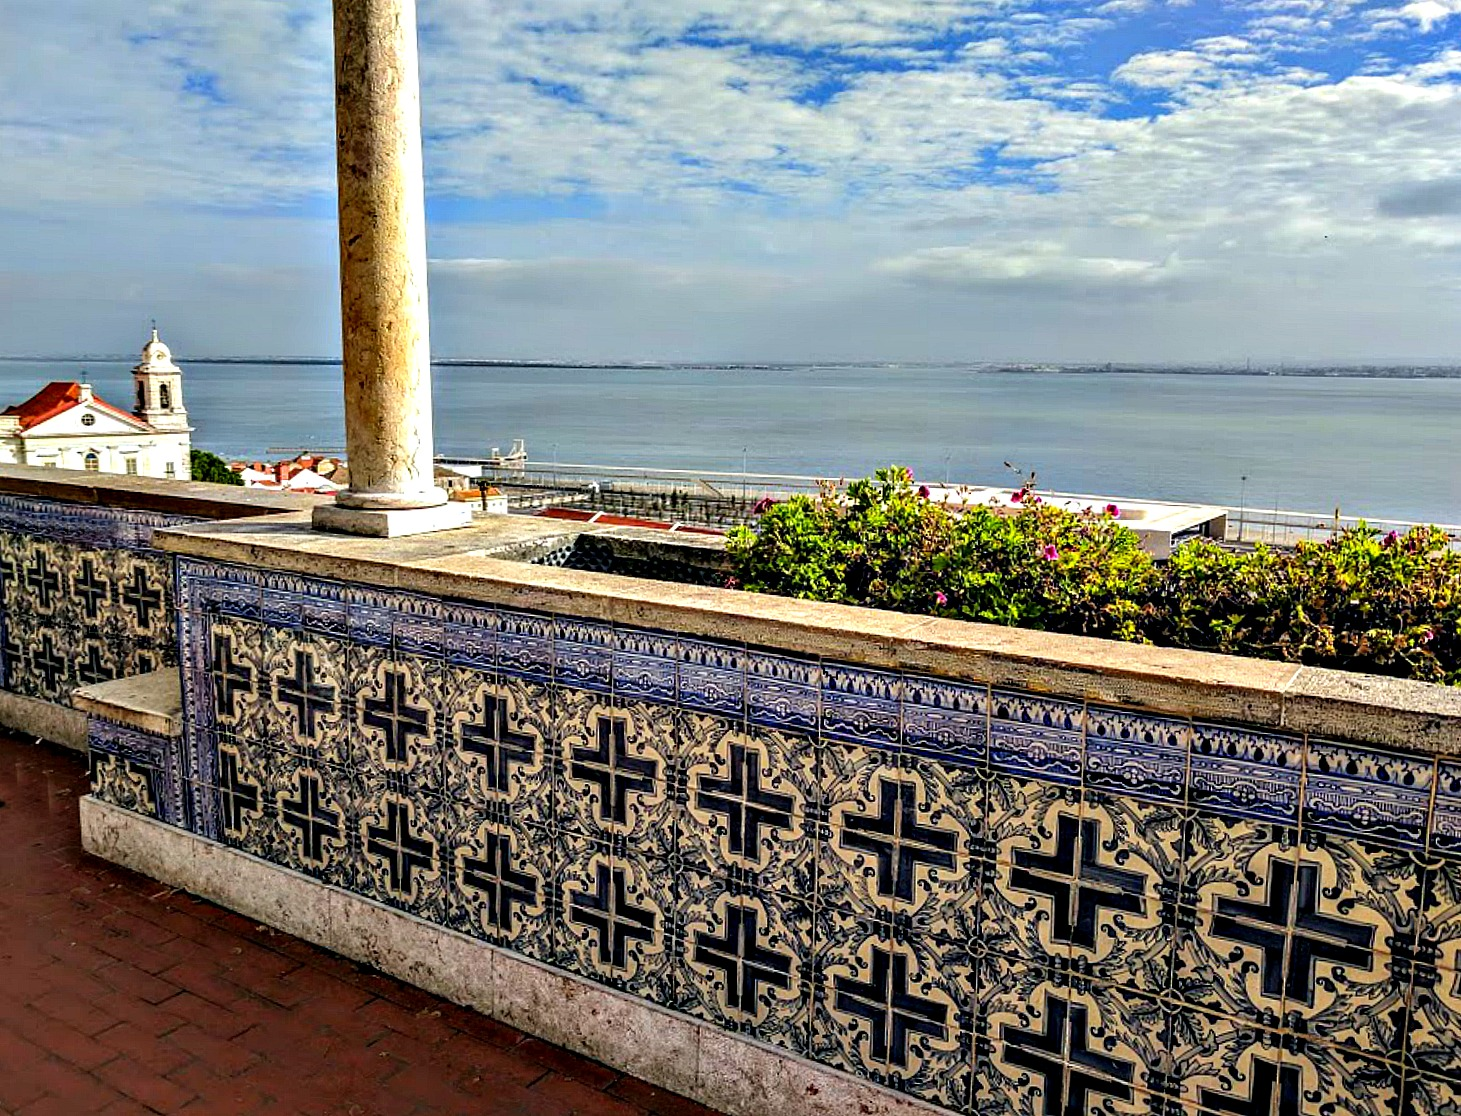 Portugal - one week itinerary. One of the most beautiful locations in Lisbon, Jardim Julio de Castilho, is perfect place to relax and take in the views of the city.